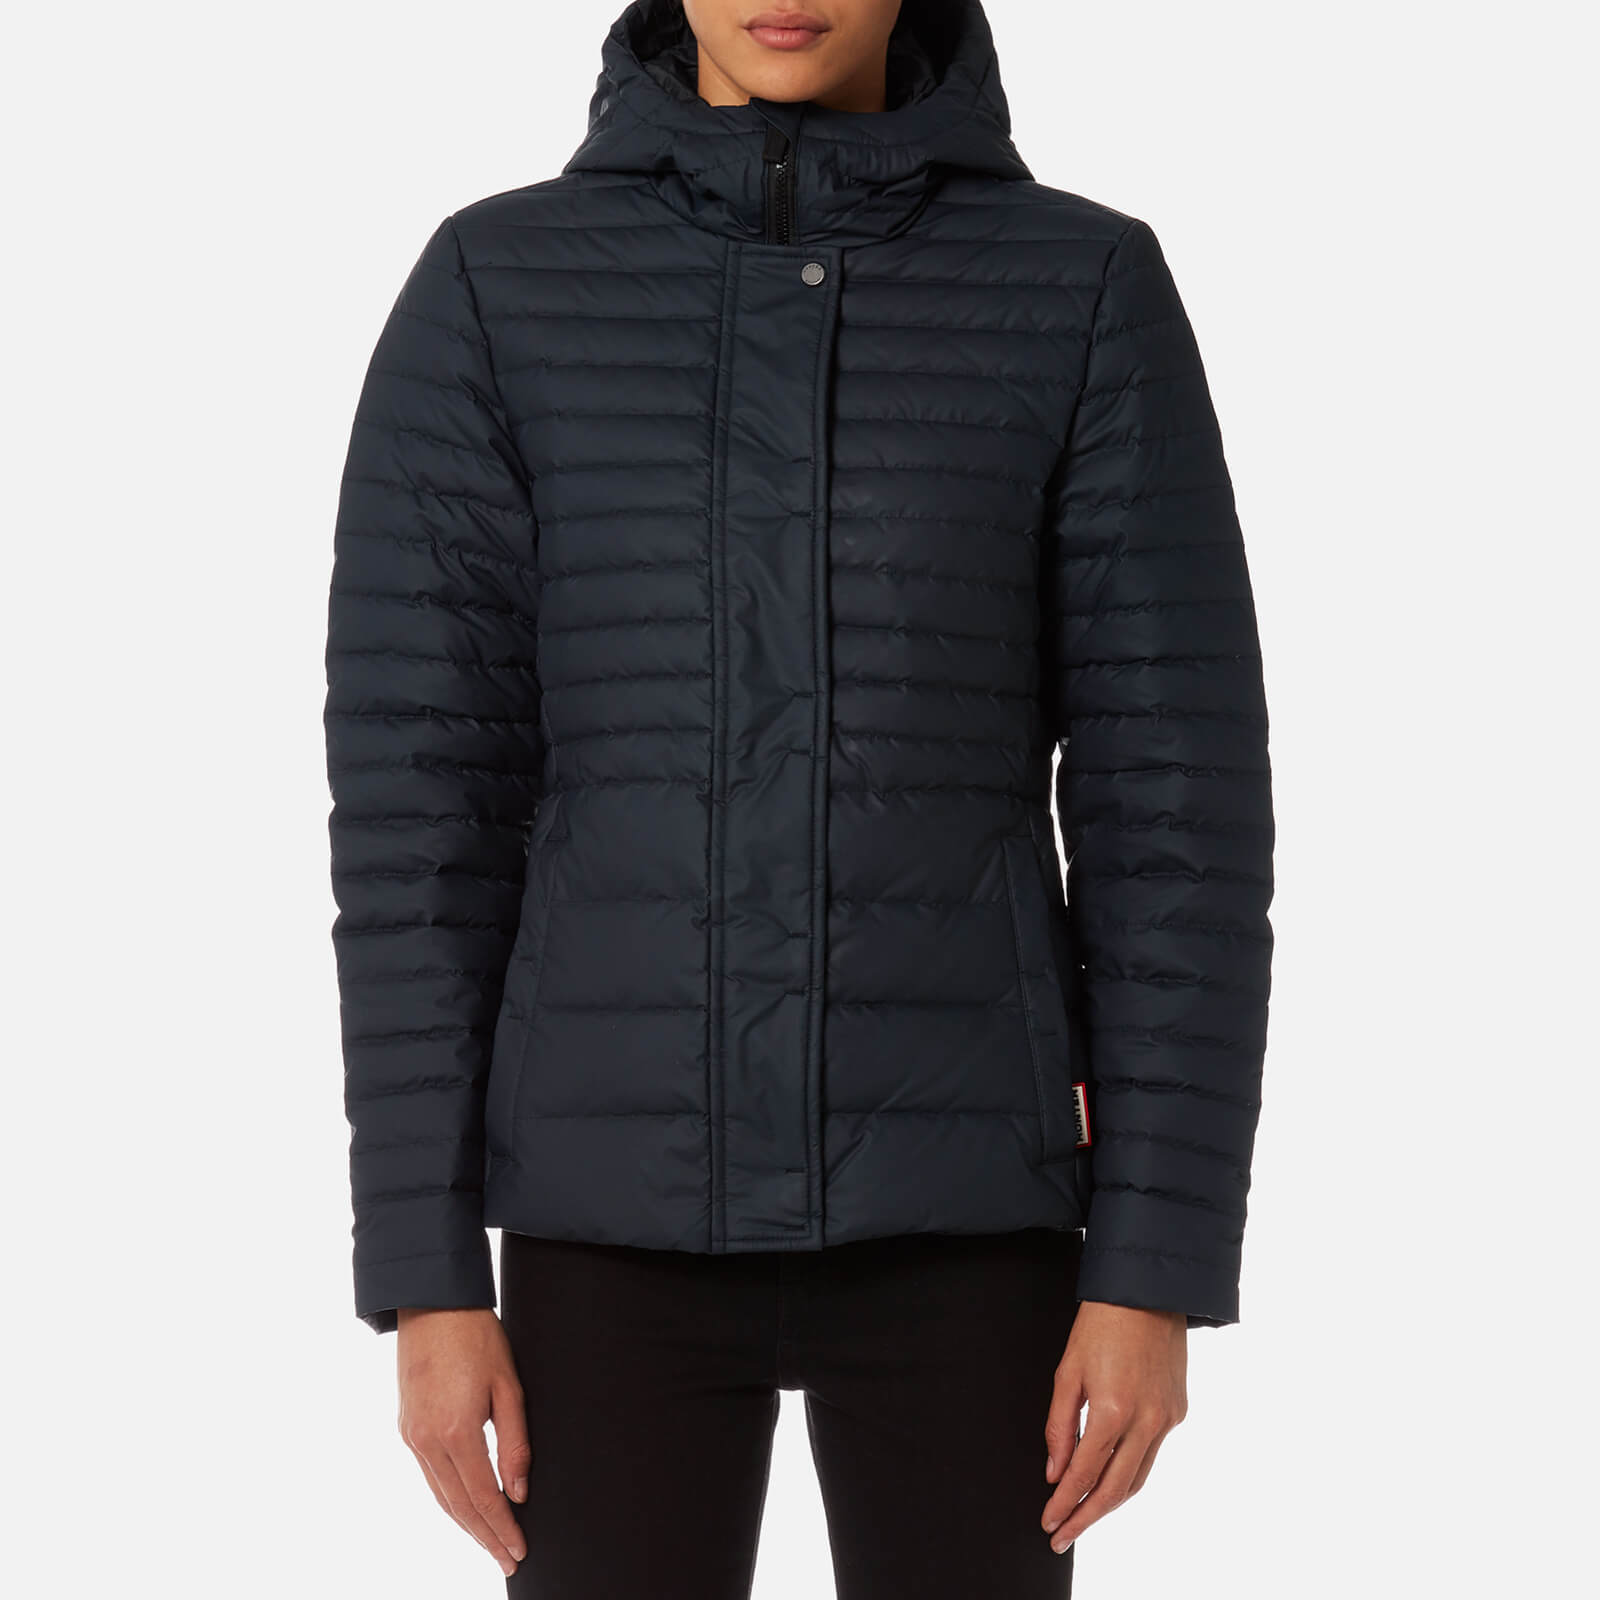 99bbf89f4098c Hunter Women's Original Refined Down Jacket - Navy - Free UK Delivery over  £50